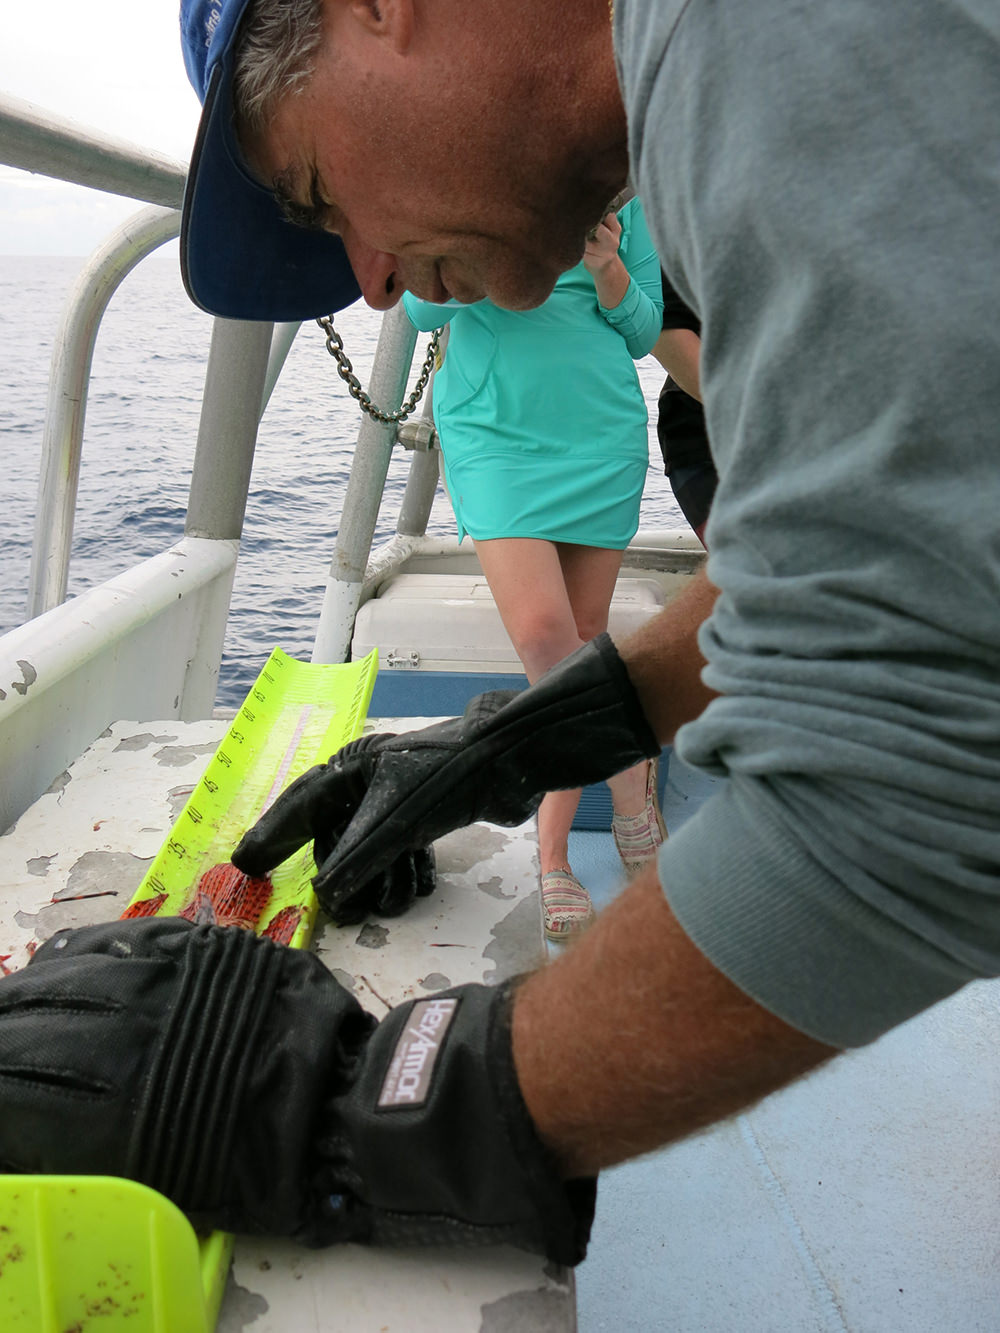 A man wearing puncture proof gloves measuring a lionfish on a fish board